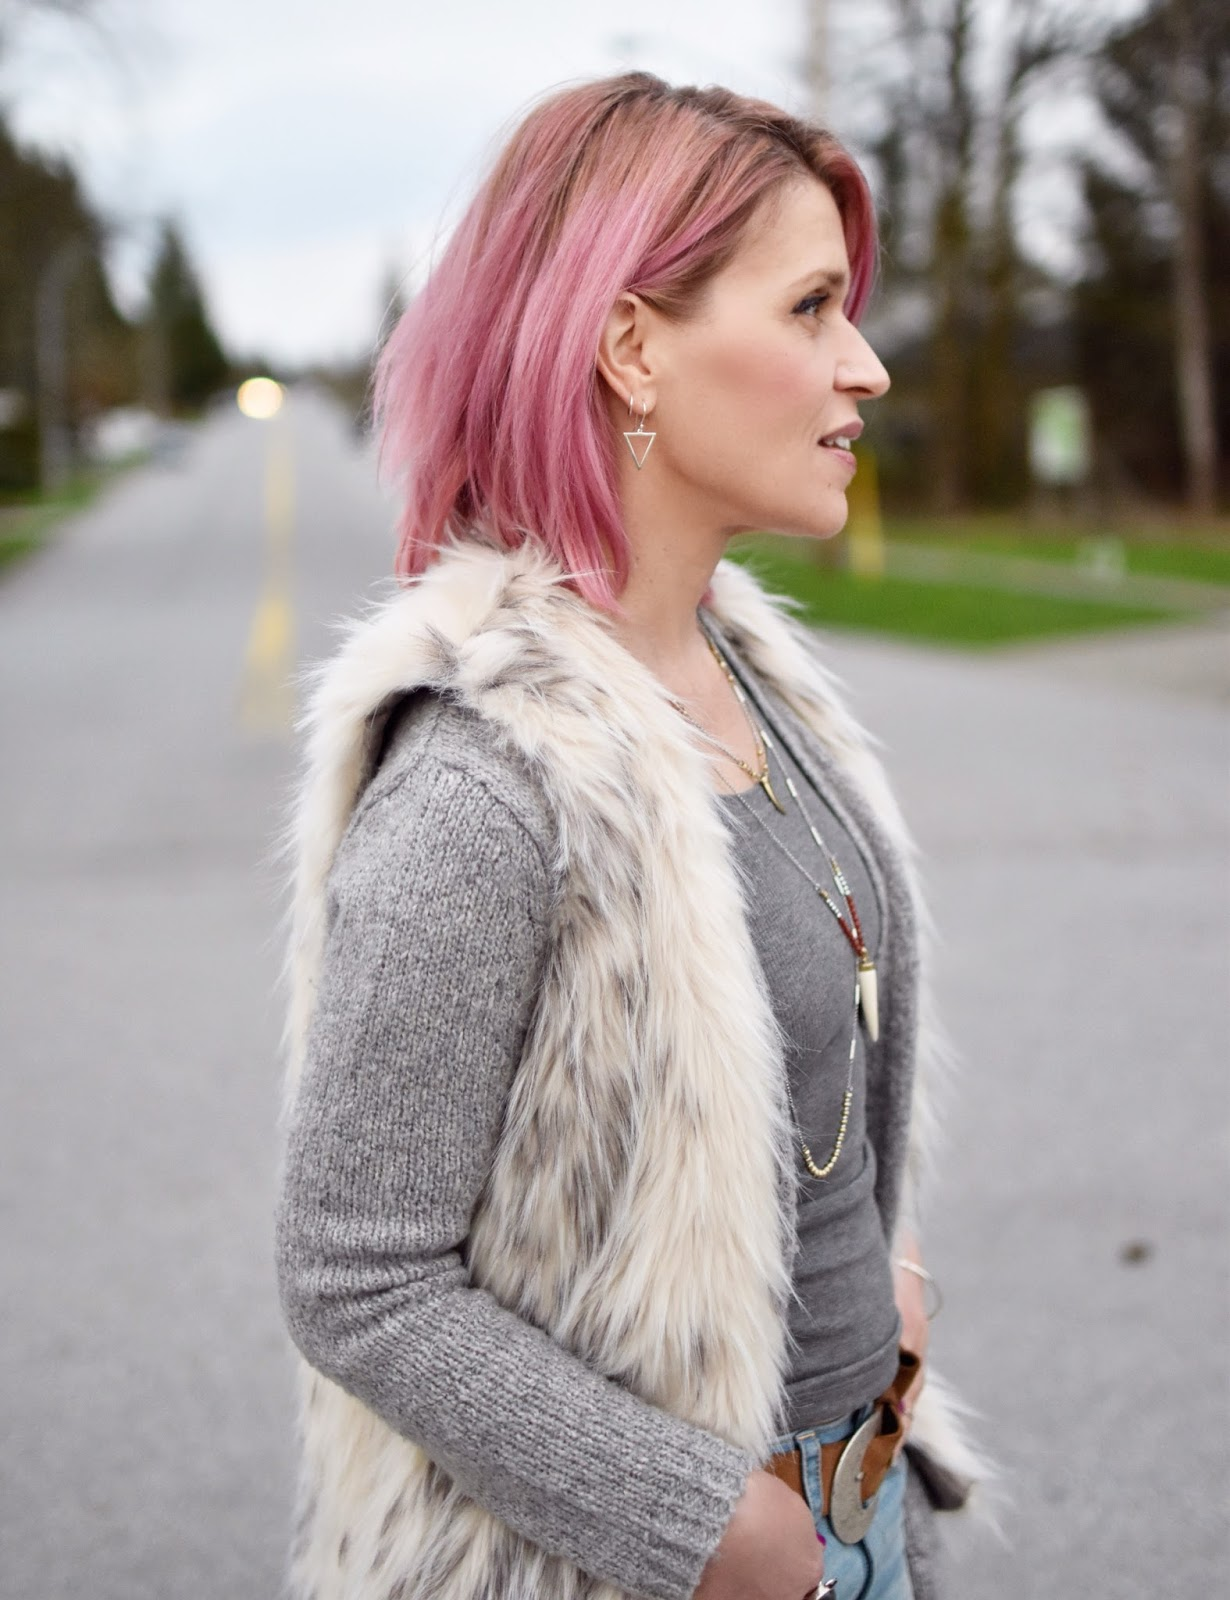 Monika Faulkner outfit inspiration - grey tank top and cardigan, faux-fur vest, Lucky Brand necklace, pink hair